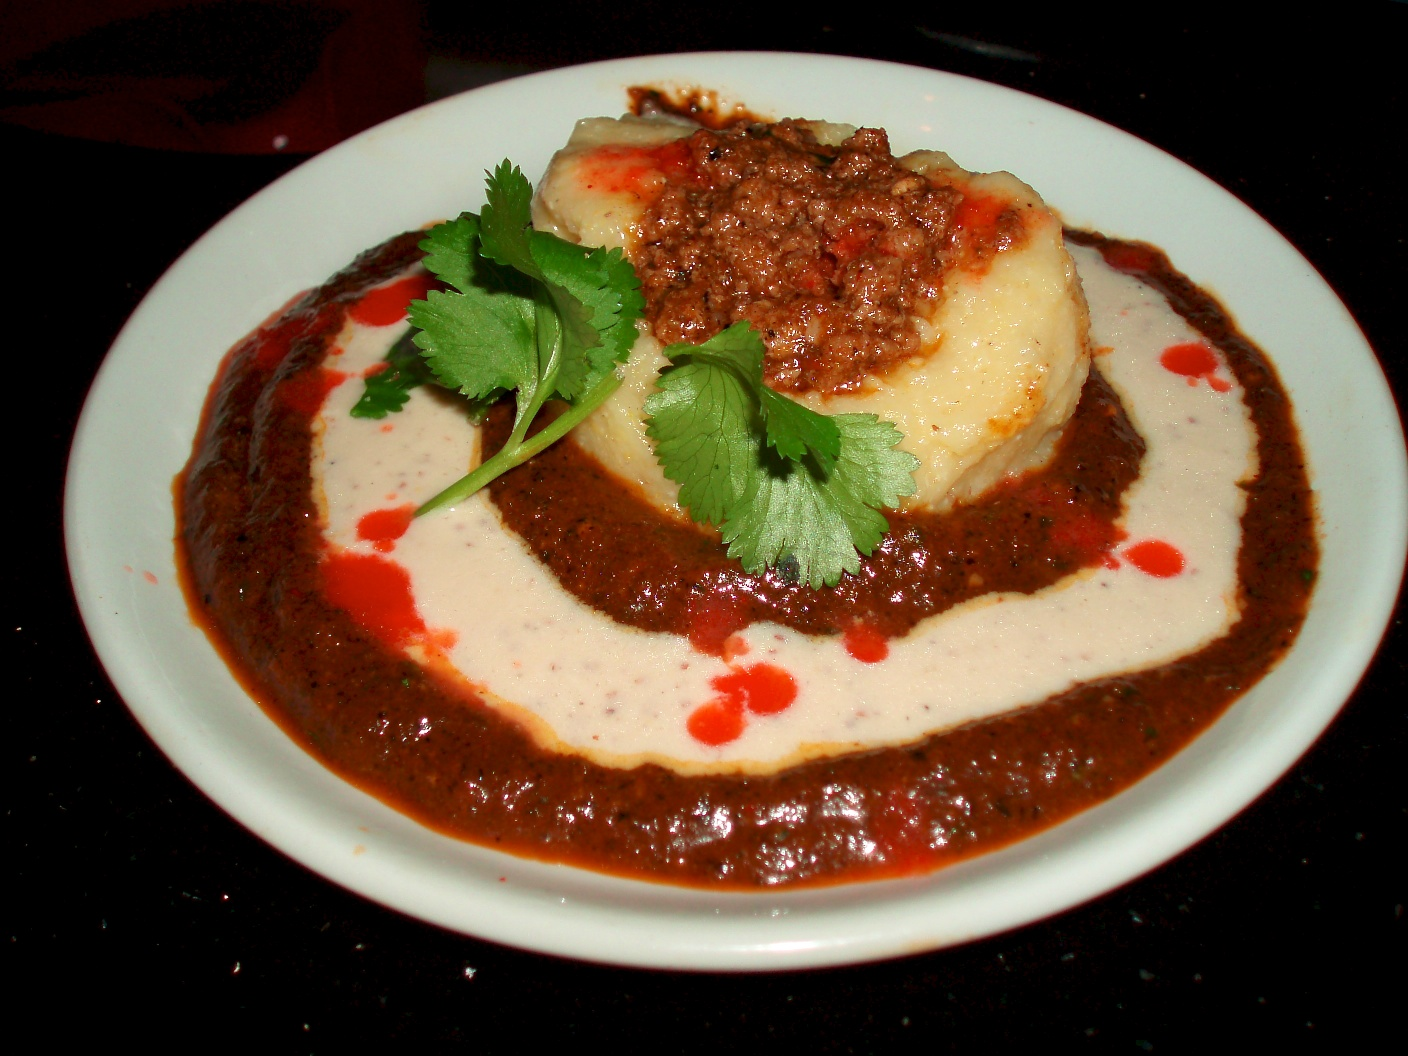 ... Stuffed Polenta Cake with Pasilla Chili Mole and Creamy Jaja Sauce